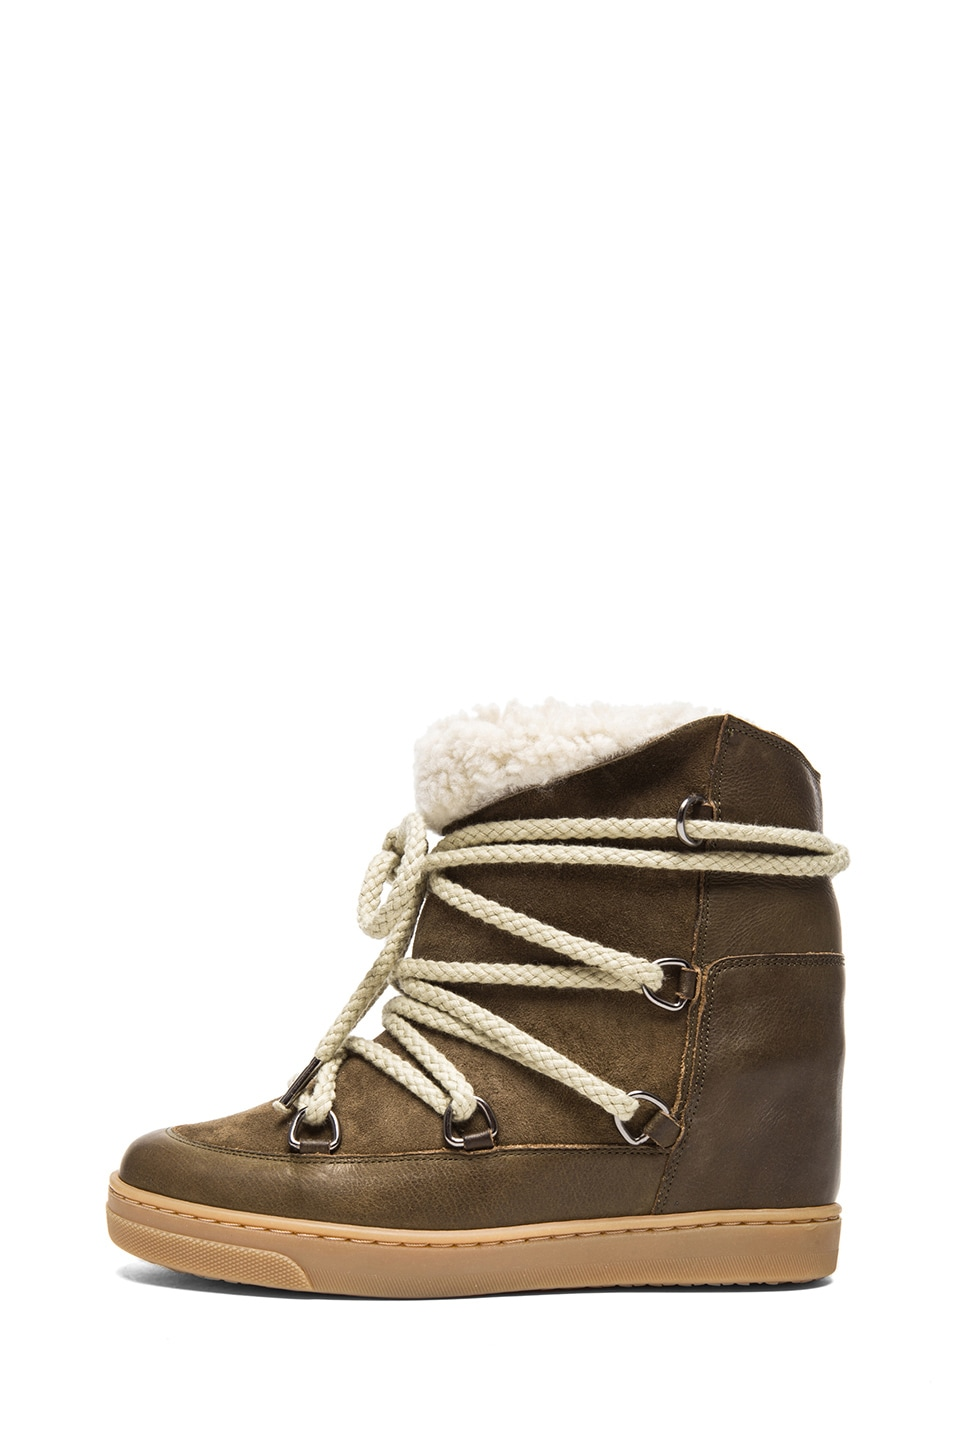 Image 1 of Isabel Marant Nowles Shearling & Calfskin Leather Boots in Khaki